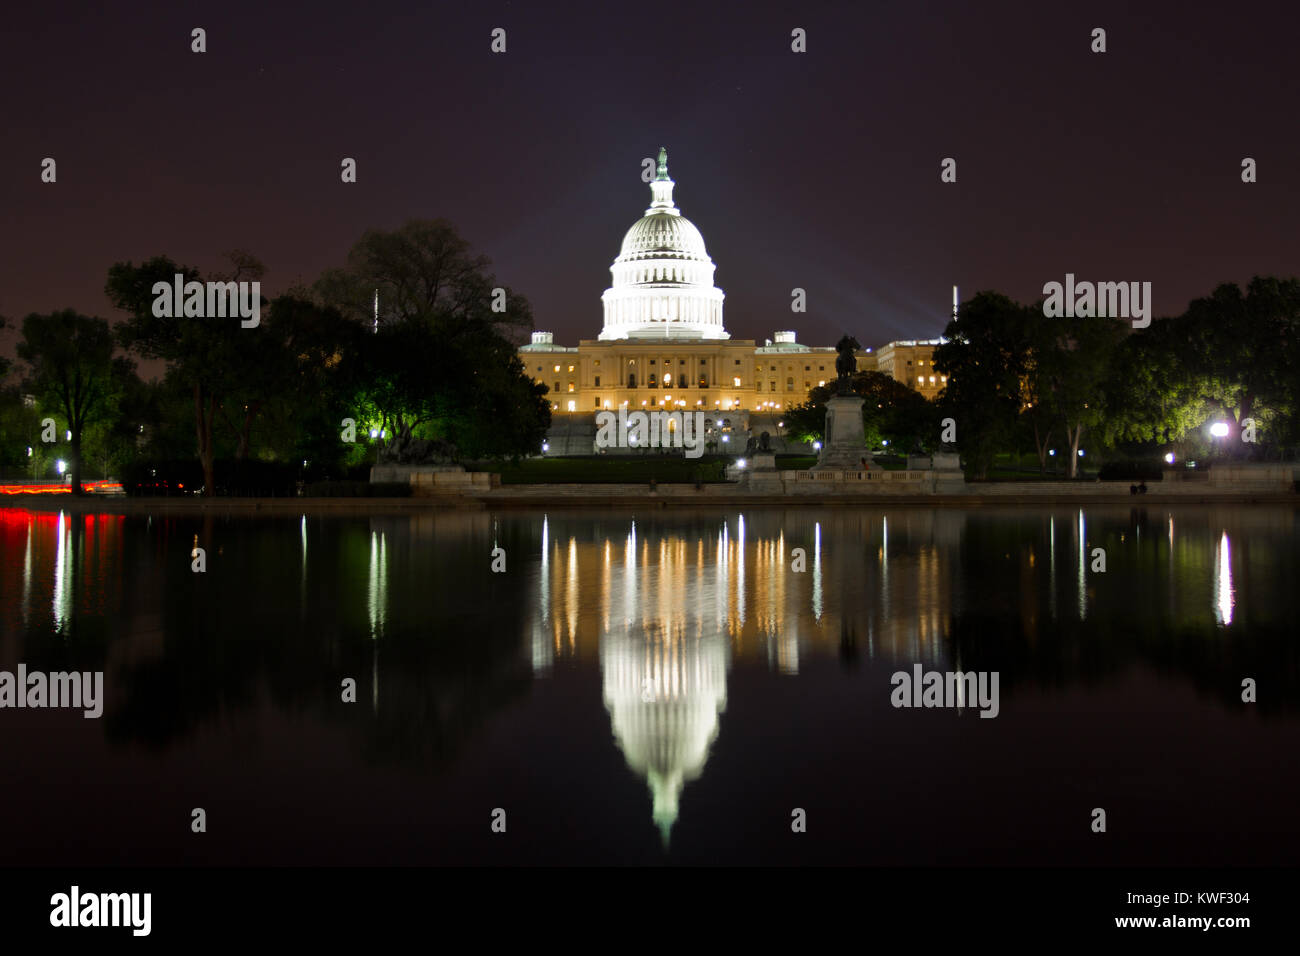 United States Capitol Building, Washington DC, is the home of the US Congress, and the seat of the legislative branch Stock Photo